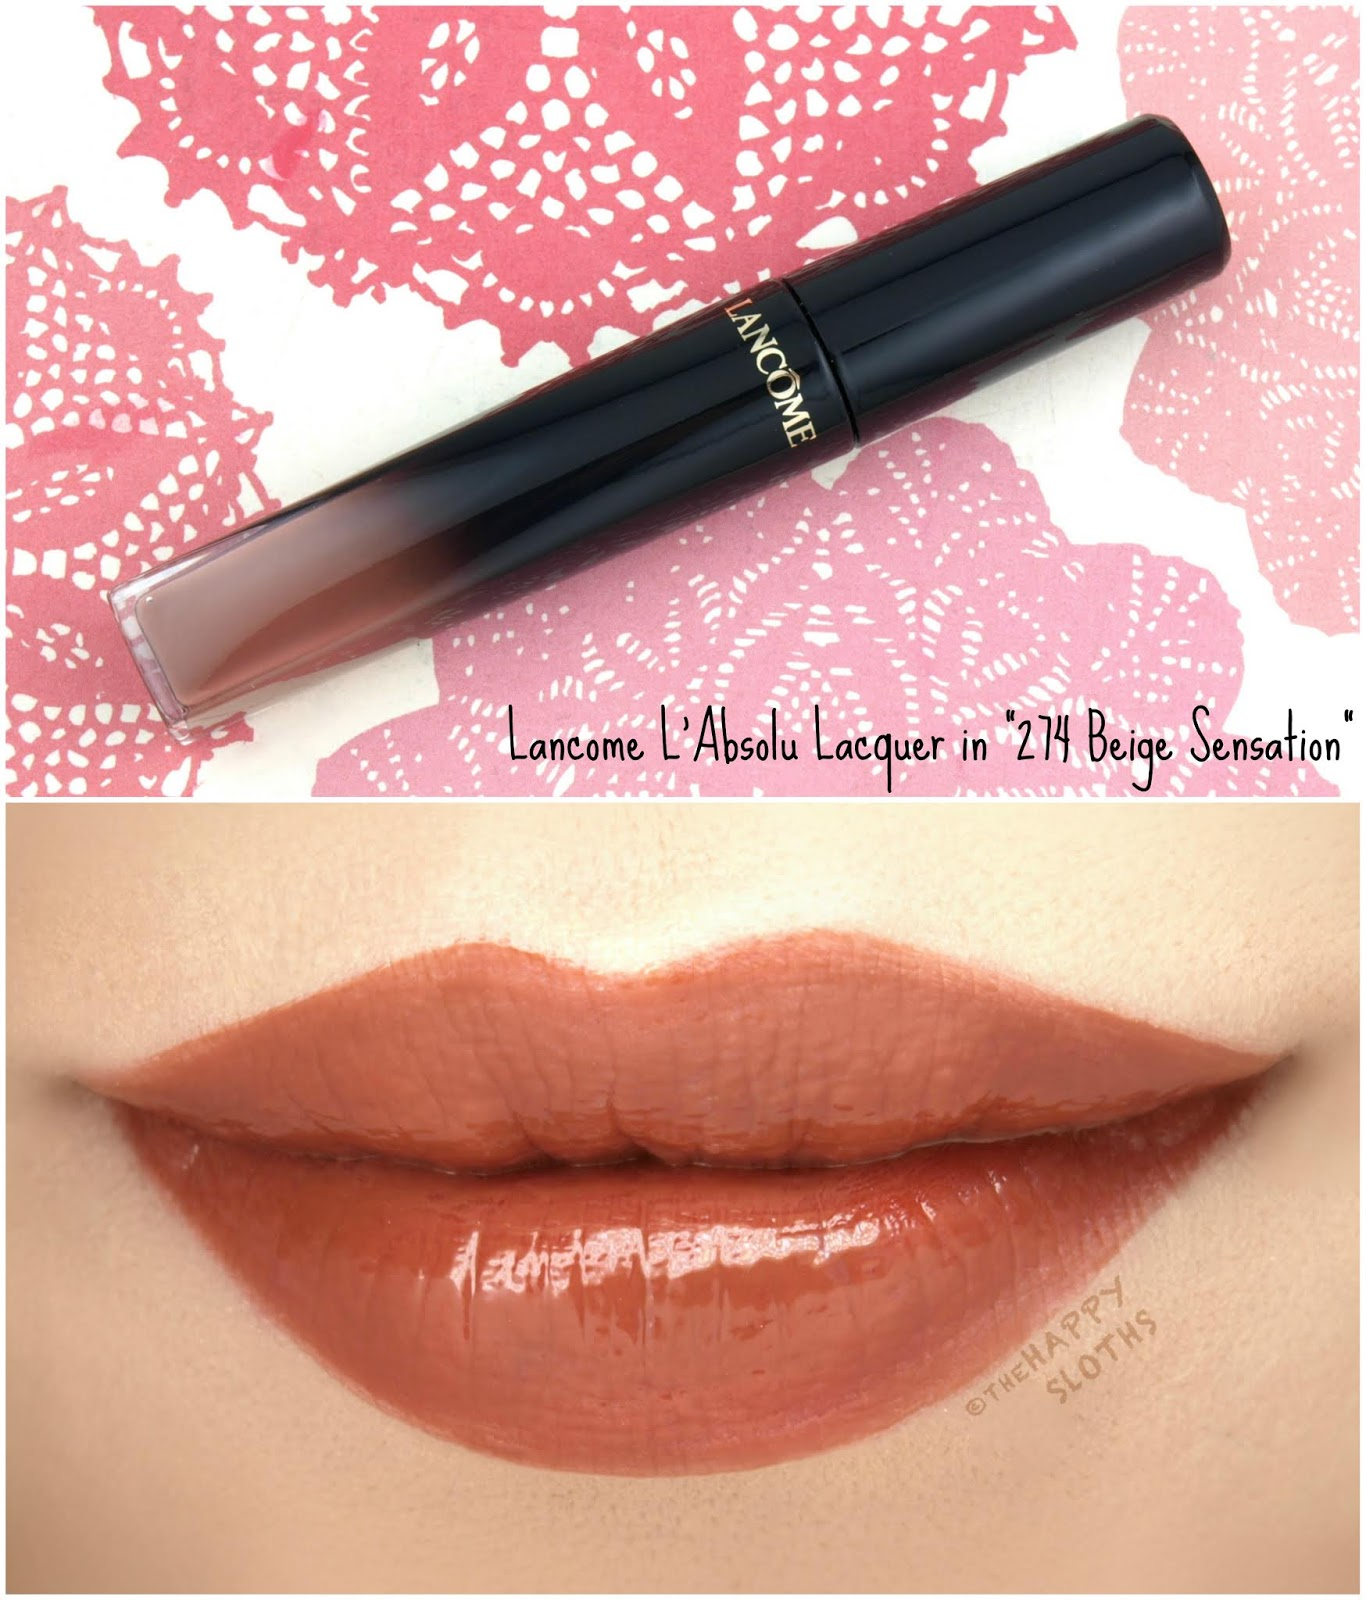 "Lancome | L'Absolu Lacquer in ""274 Beige Sensation"": Review and Swatches"